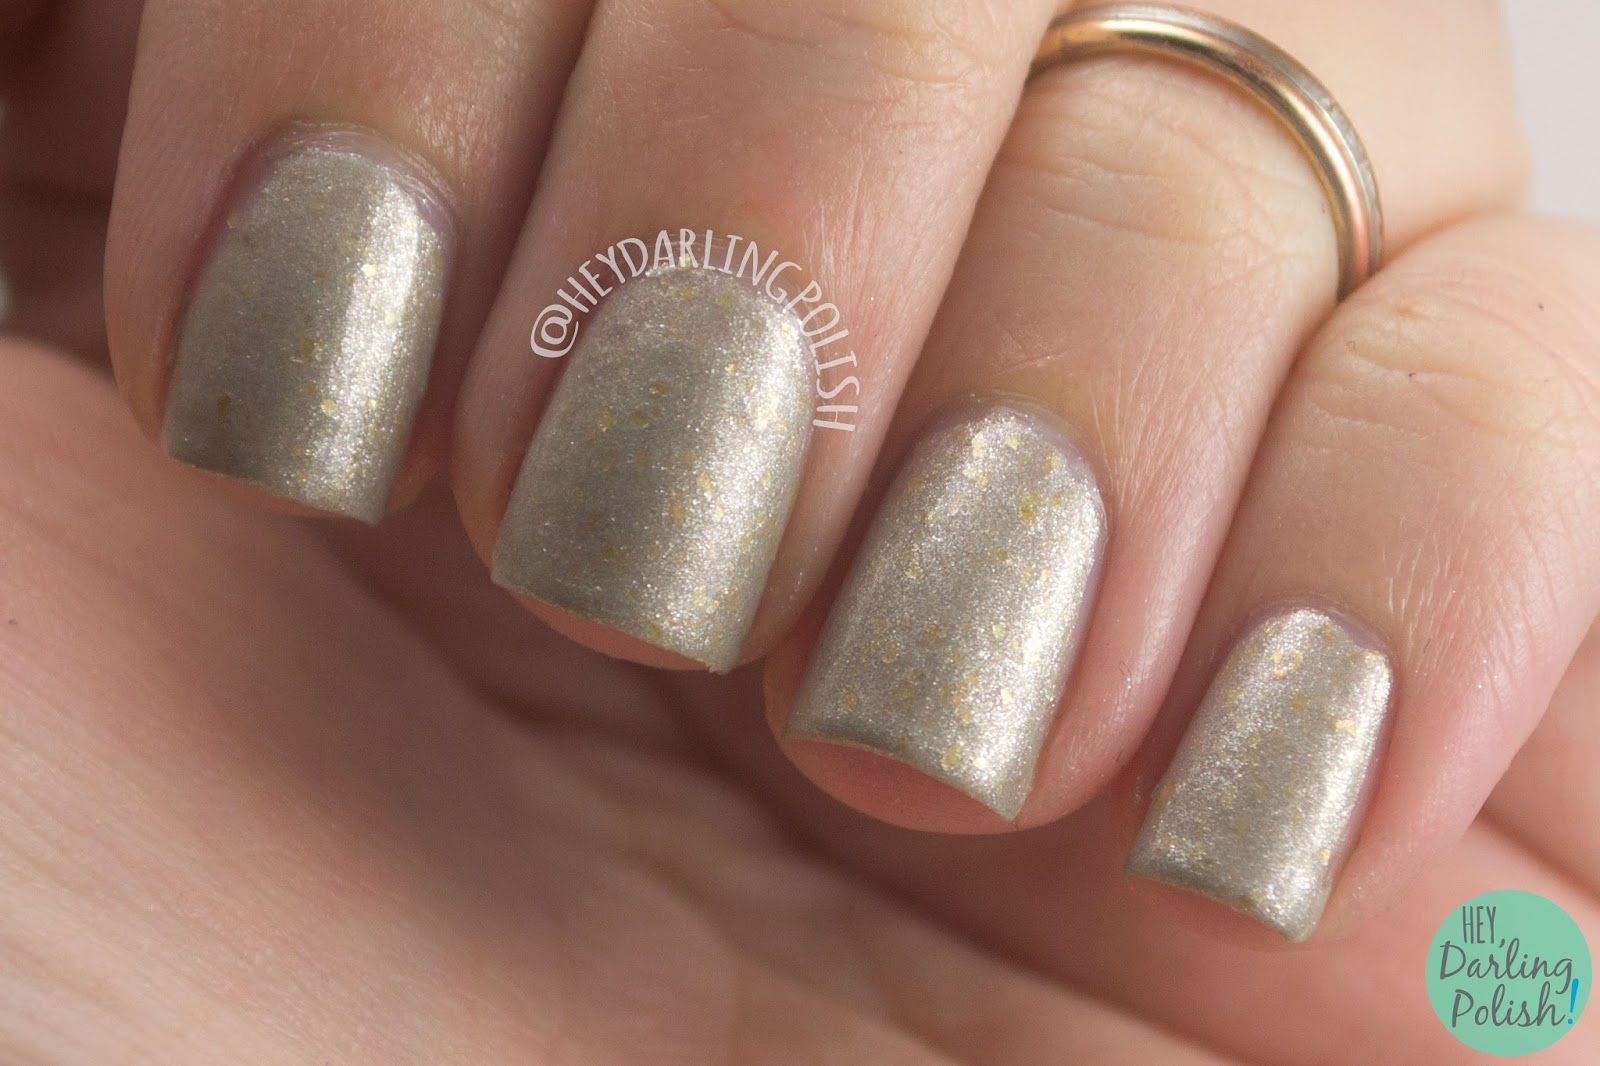 silver, gold, shimmer, flakes, silver & cold, nails, nail polish, indie nail polish, indie polish, lac attack, festivus collection, christmas, holiday, hey darling polish, swatch, review